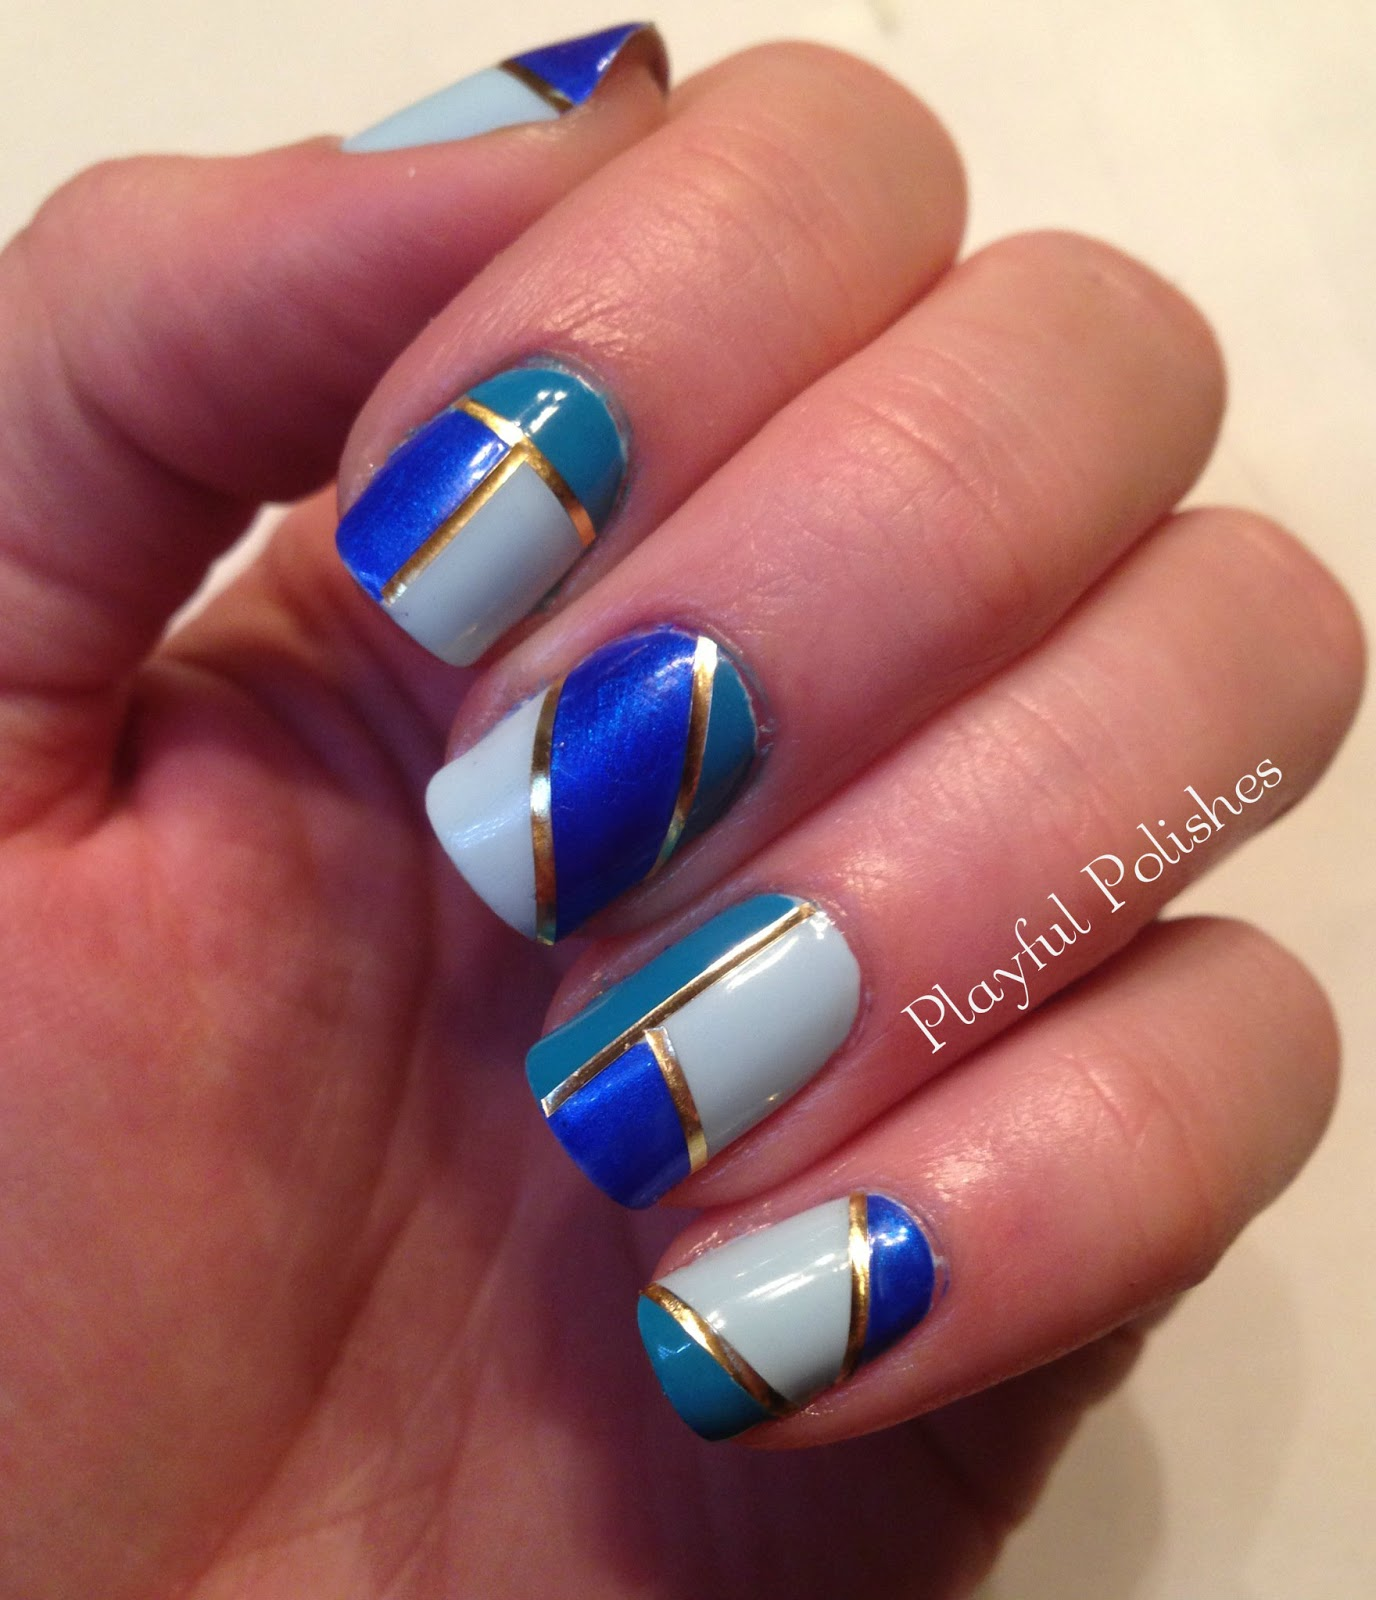 Nail Designs With Striping Tape: Playful Polishes: STRIPING TAPE